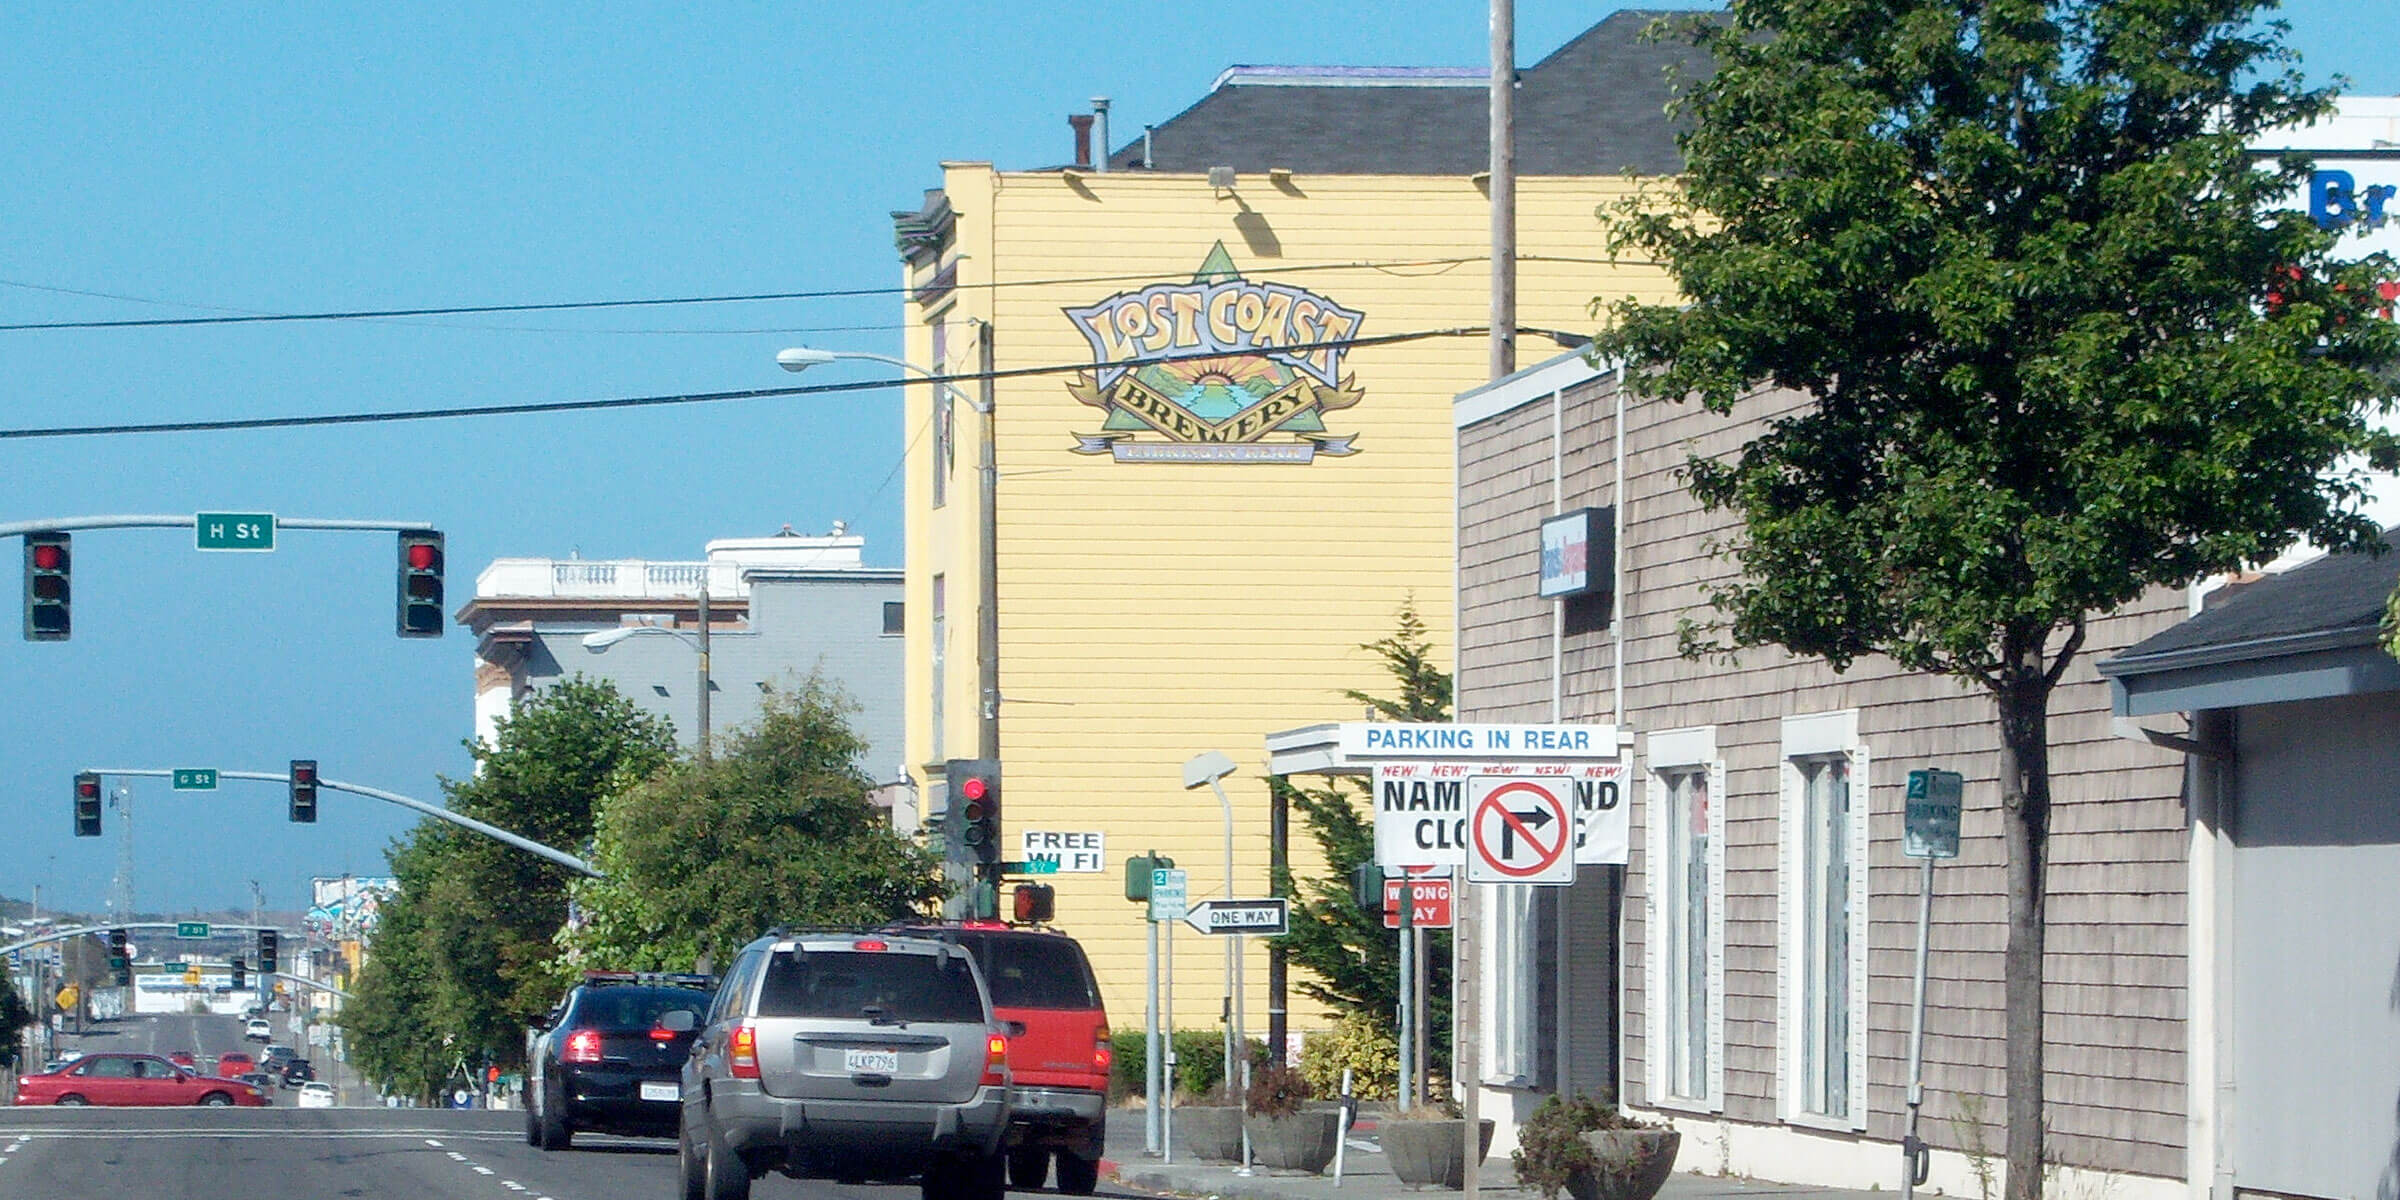 Outside the Lost Coast Brewery & Cafe in Eureka, California